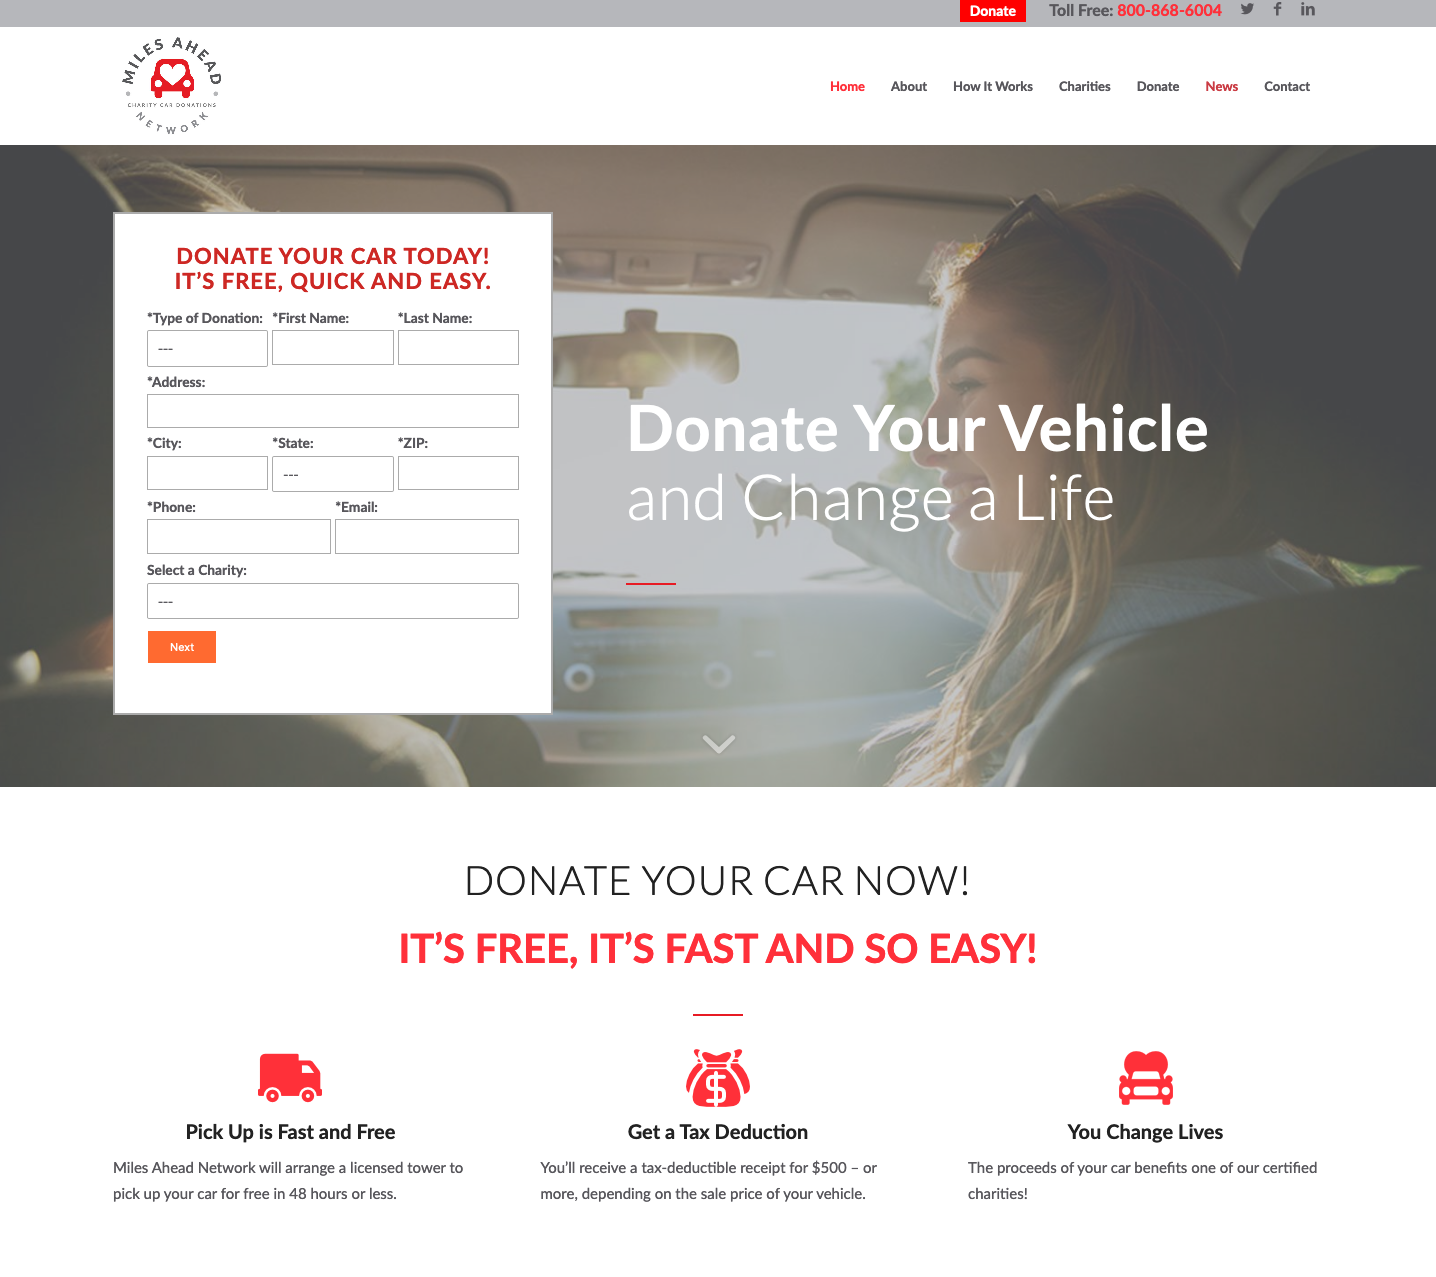 Charity Car Donations – Complete a Car Donation in New York Through Miles Ahead Network